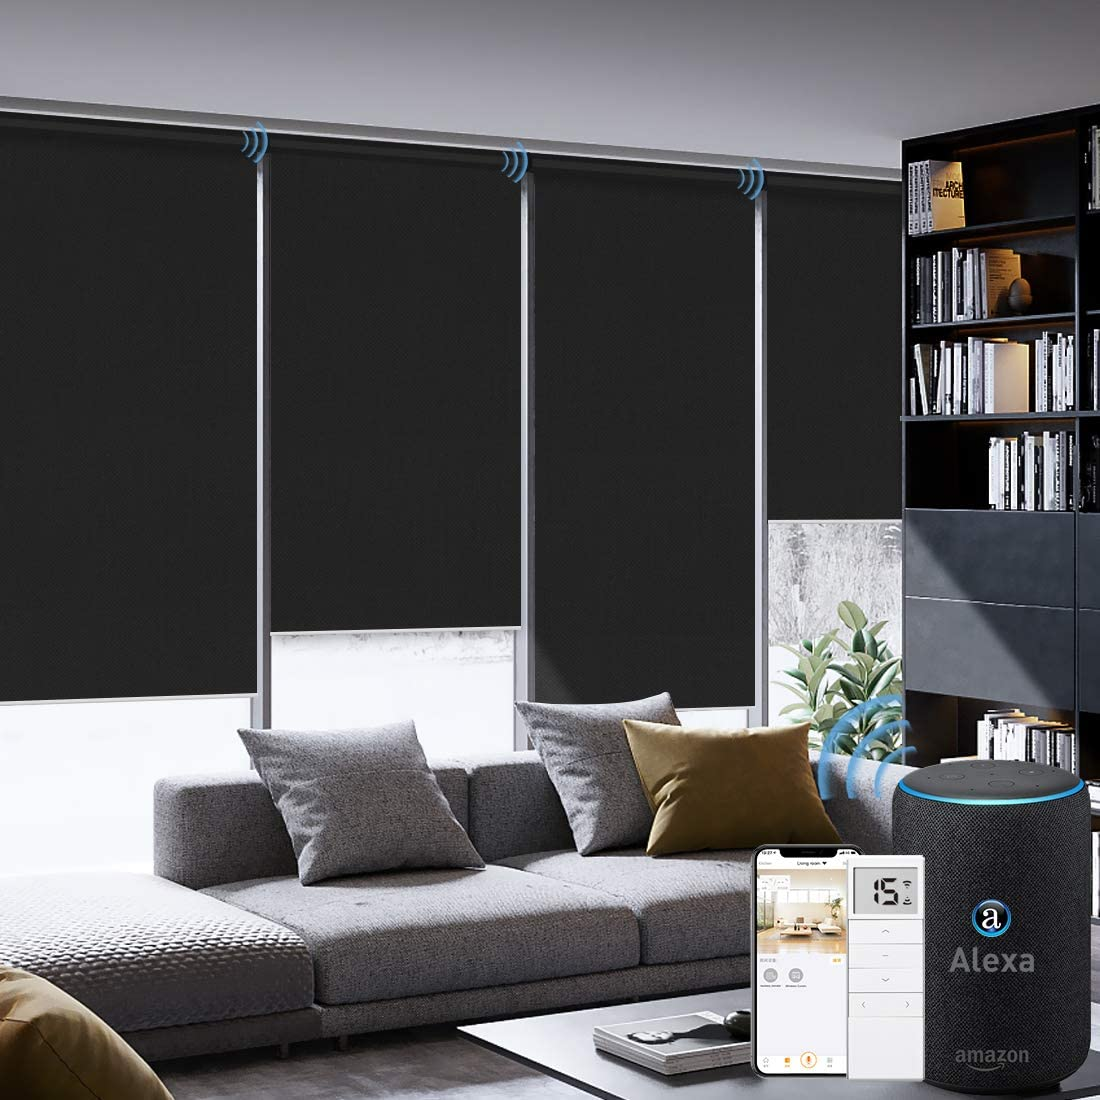 Graywind Motorized Roller Shade Compatible with Alexa Google 100% Blackout Rechargeable Smart Blinds Remote Control Battery Motor Cordless Window Shades, Customized Size (Black)